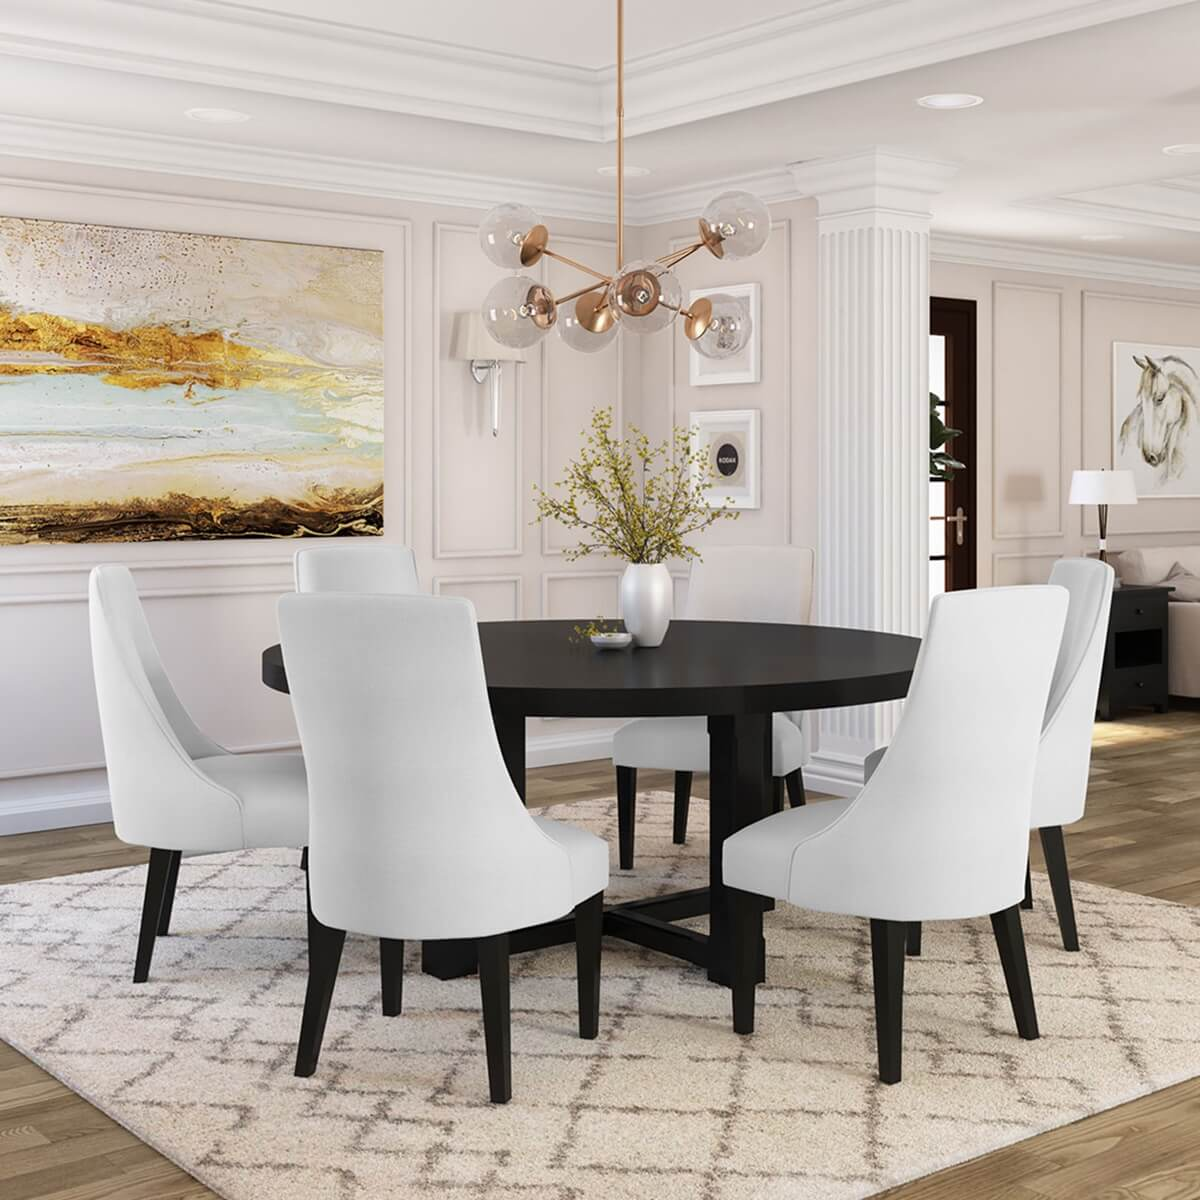 Evanston Rustic Solid Wood Round Dining Table Chair Set